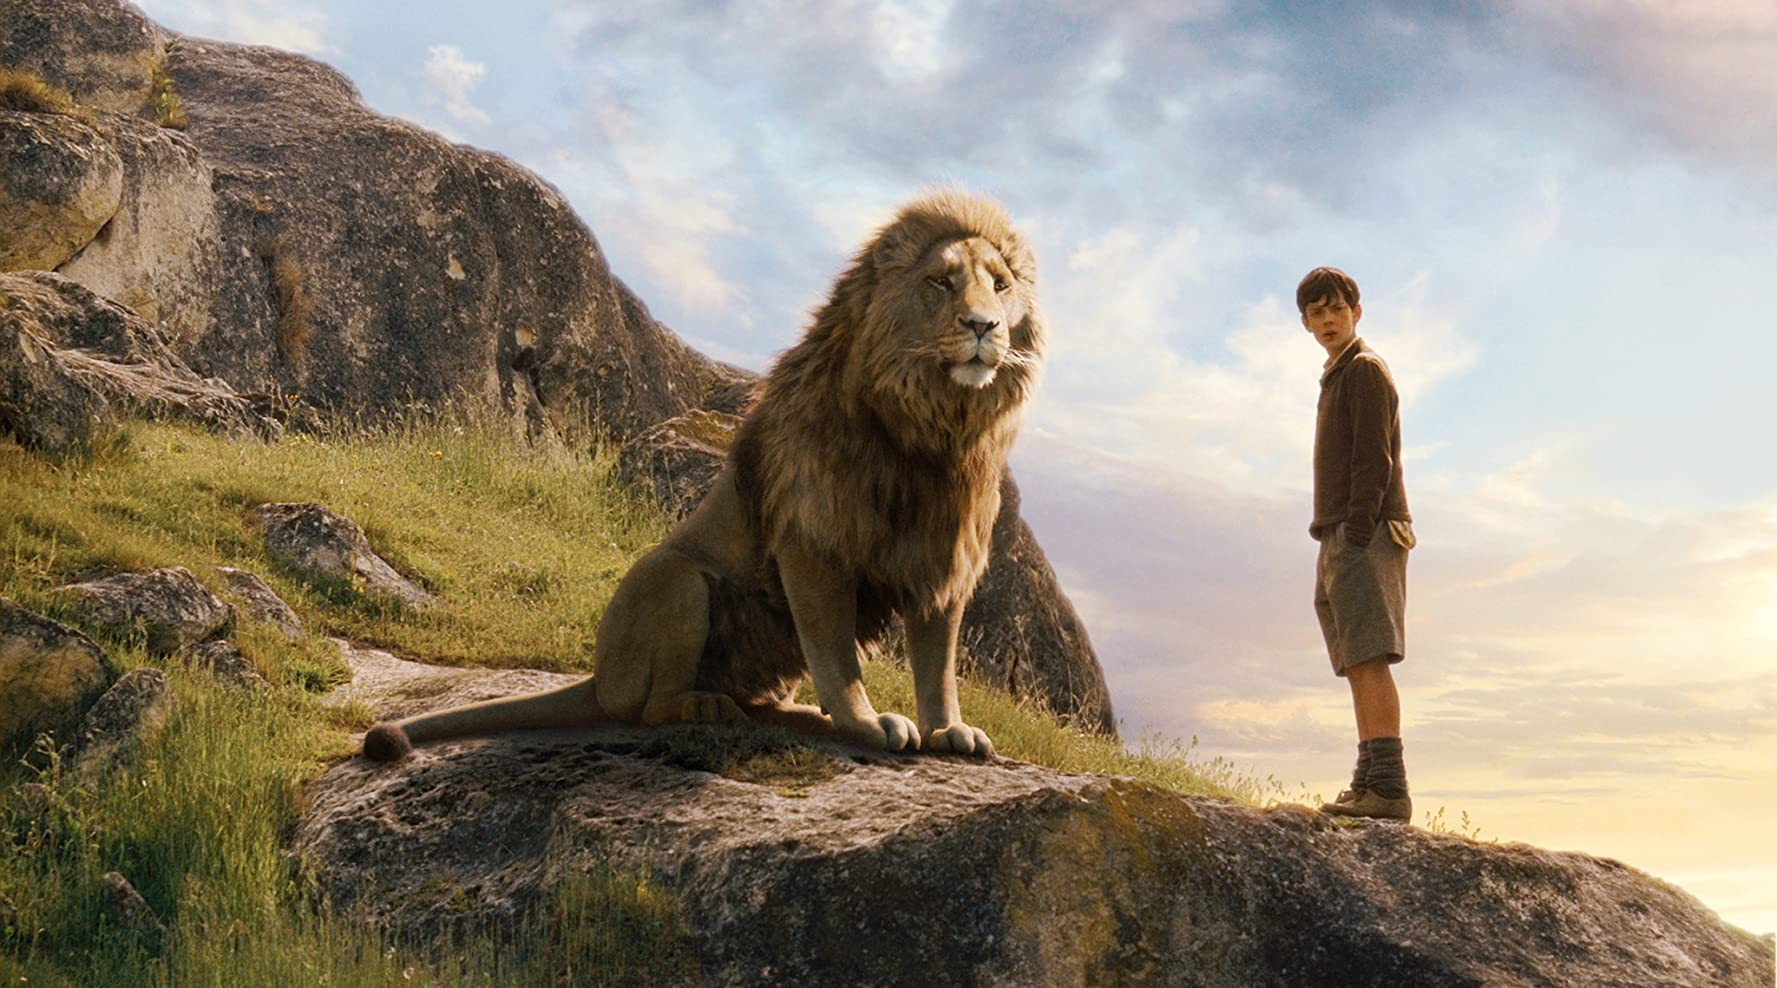 Liam Neeson and Skandar Keynes in The Chronicles of Narnia: The Lion, the Witch and the Wardrobe (2005)